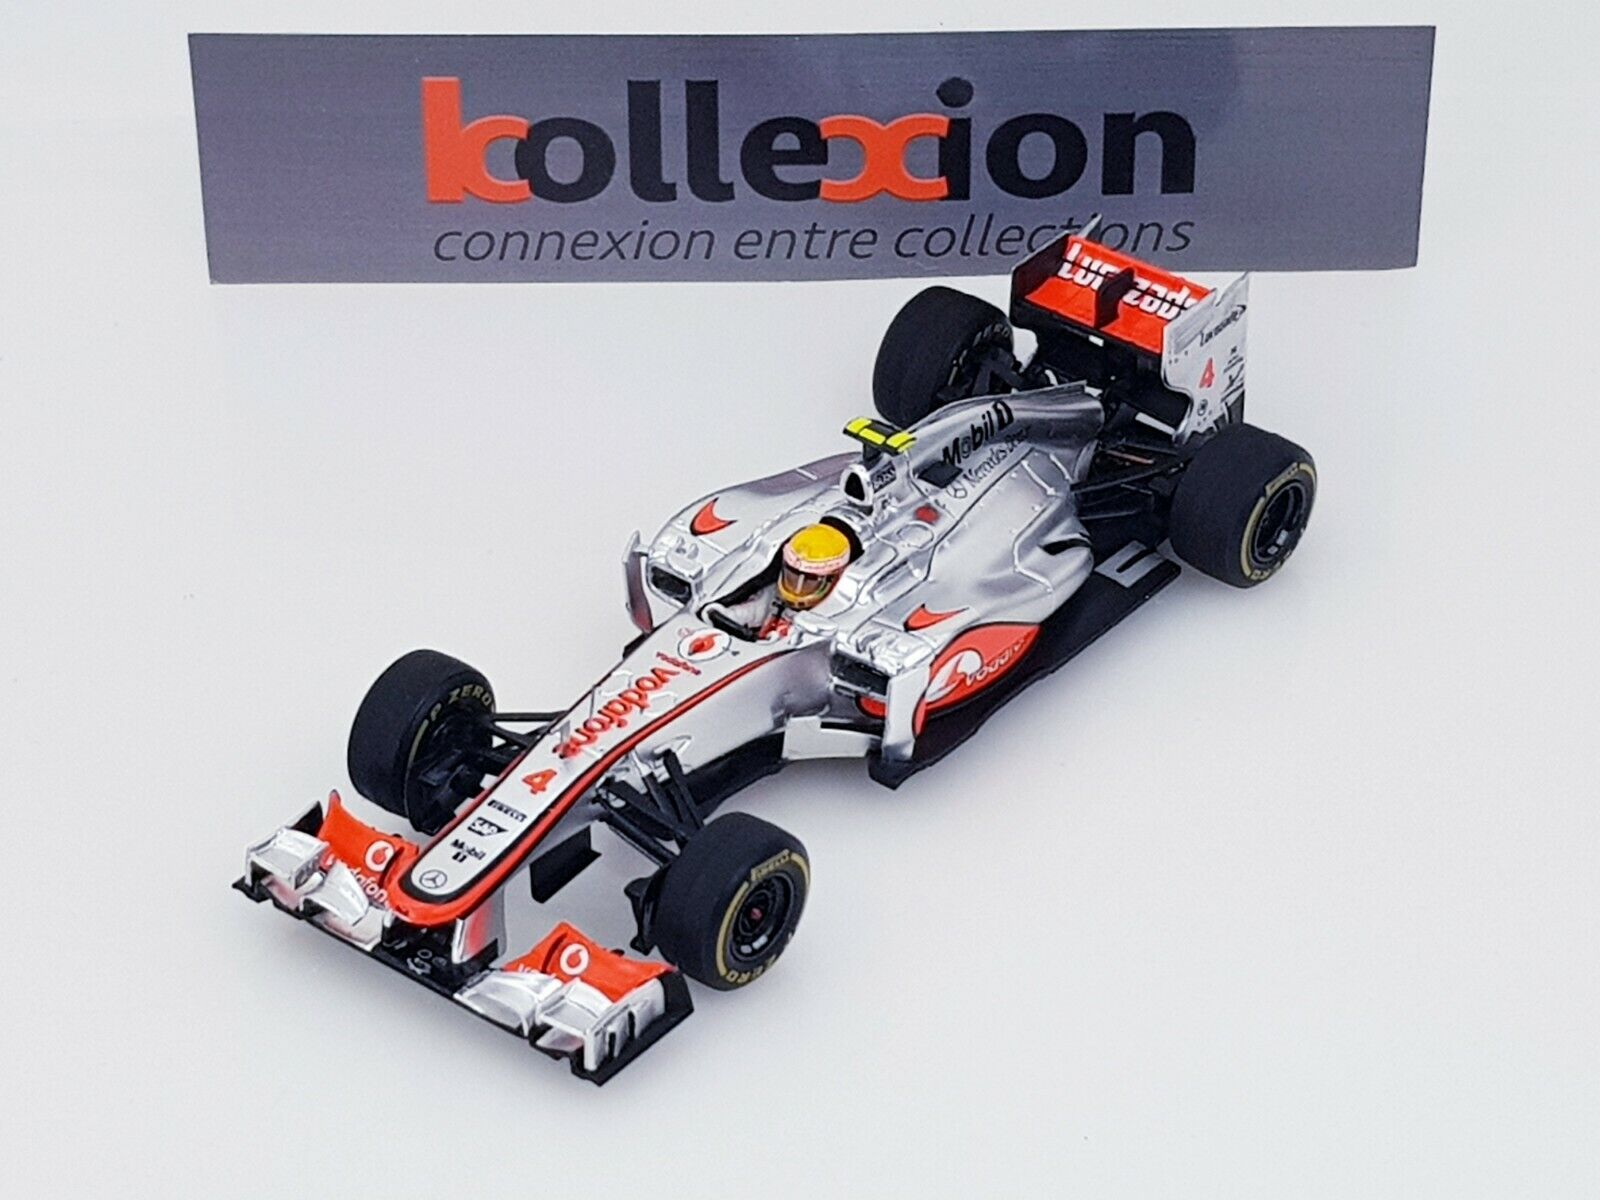 S3045 spark vodafone mclaren mercedes mp4-27 no. 4 monaco gp 2012 hamilton 1.43 nb